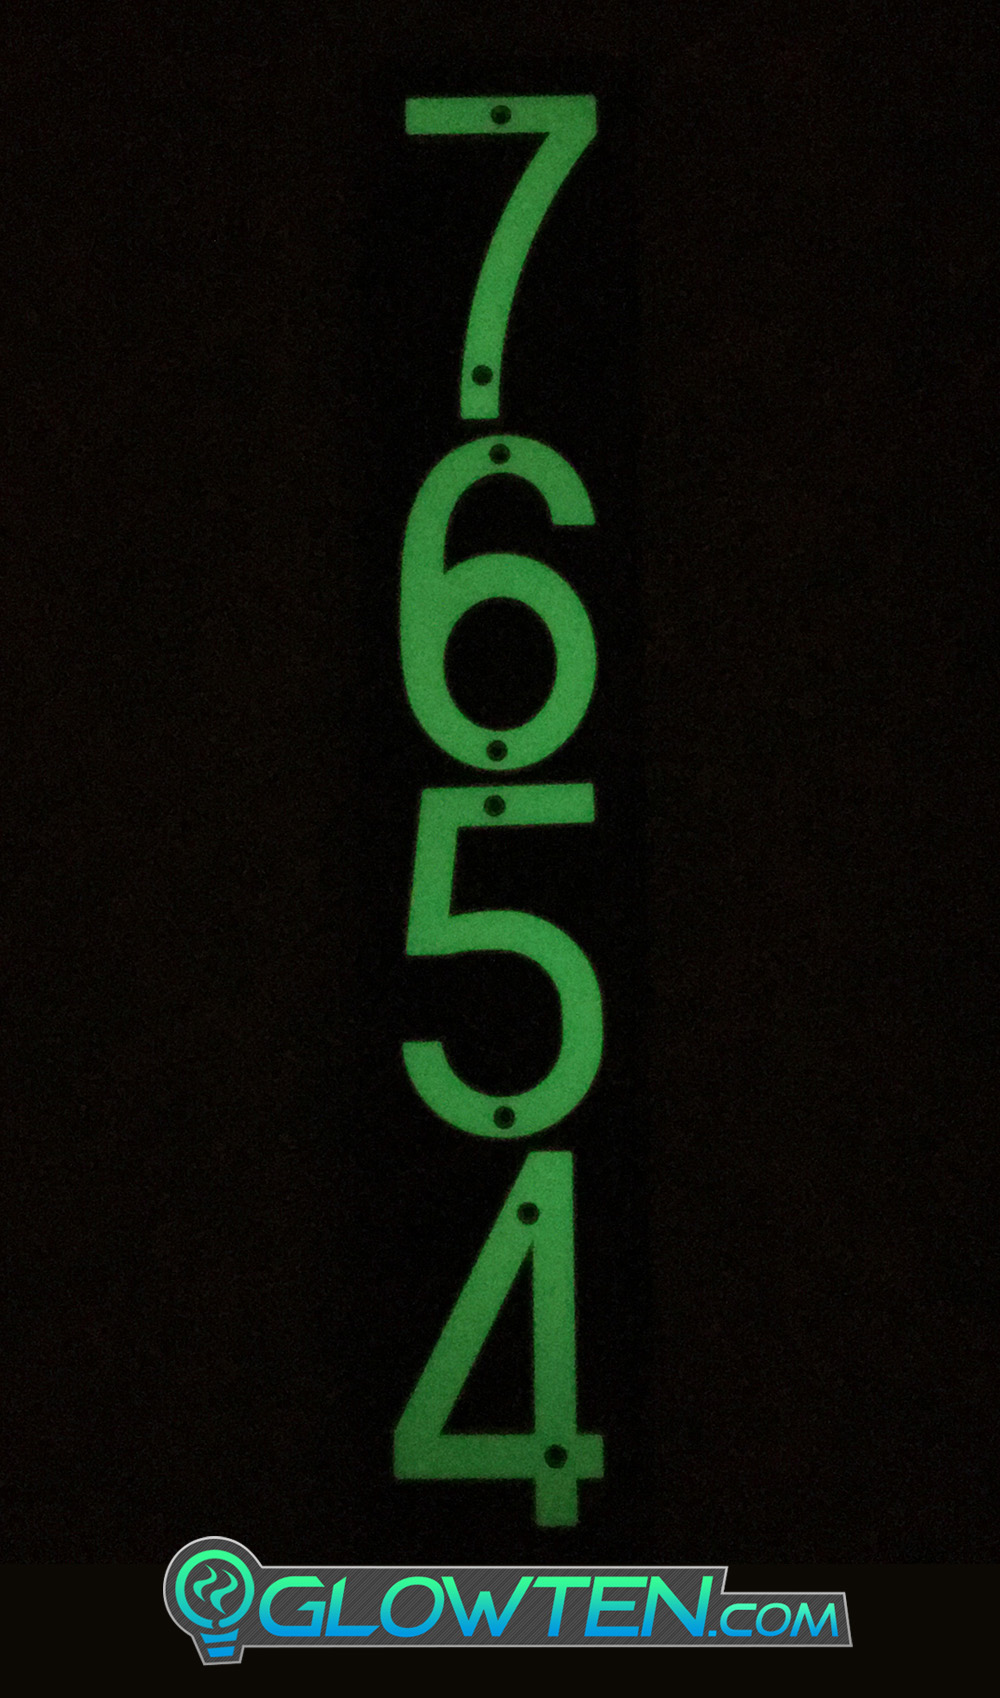 GLOWTEN.com - FOUR 4 NUMBERS with BLACK PLAQUE BACKING Glow In Dark House Address Number Vertical Eco Friendly Photoluminescent Sign ABS Material Price For Whole Set Backboard Included Fully Customizable Please Pick And Choose Your Numbers Emitting Green Glow Help Your Delivery Guy At Night Photo Luminescent Vinyl No Electricity Required Emitting Glow Light Naturally Night View picture photo cap preview pic image search 2